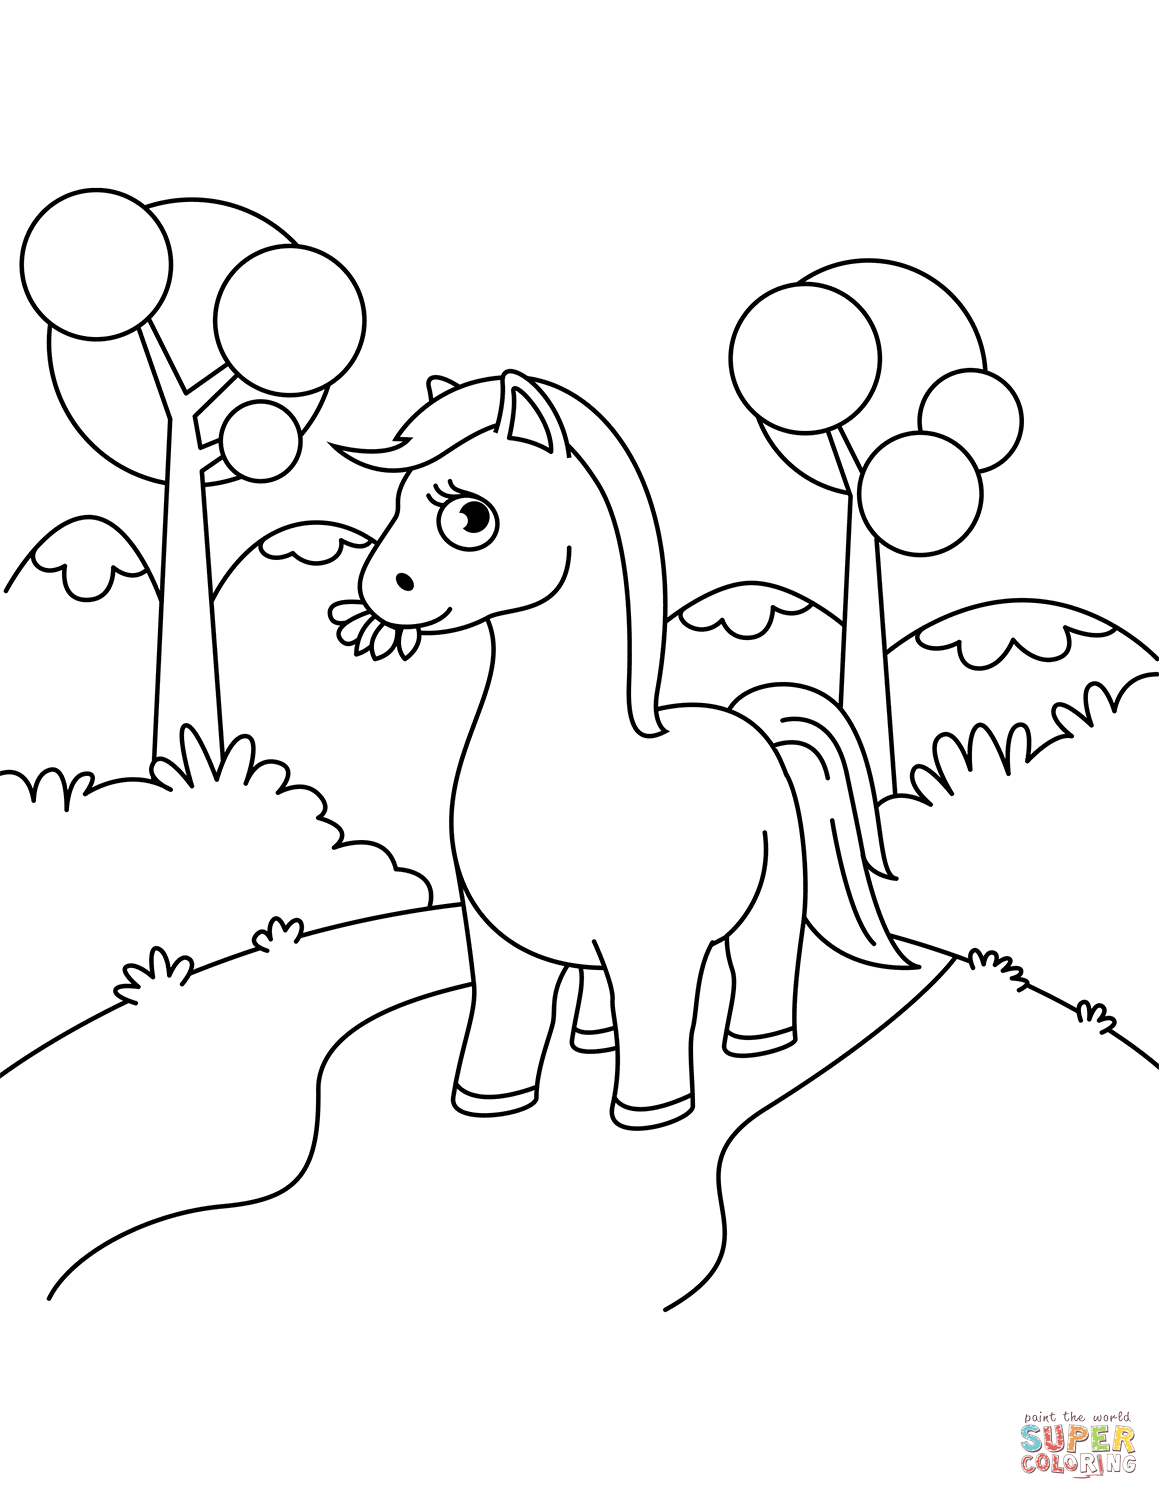 Cute horse chewing grass super coloring horse coloring pages coloring books free printable